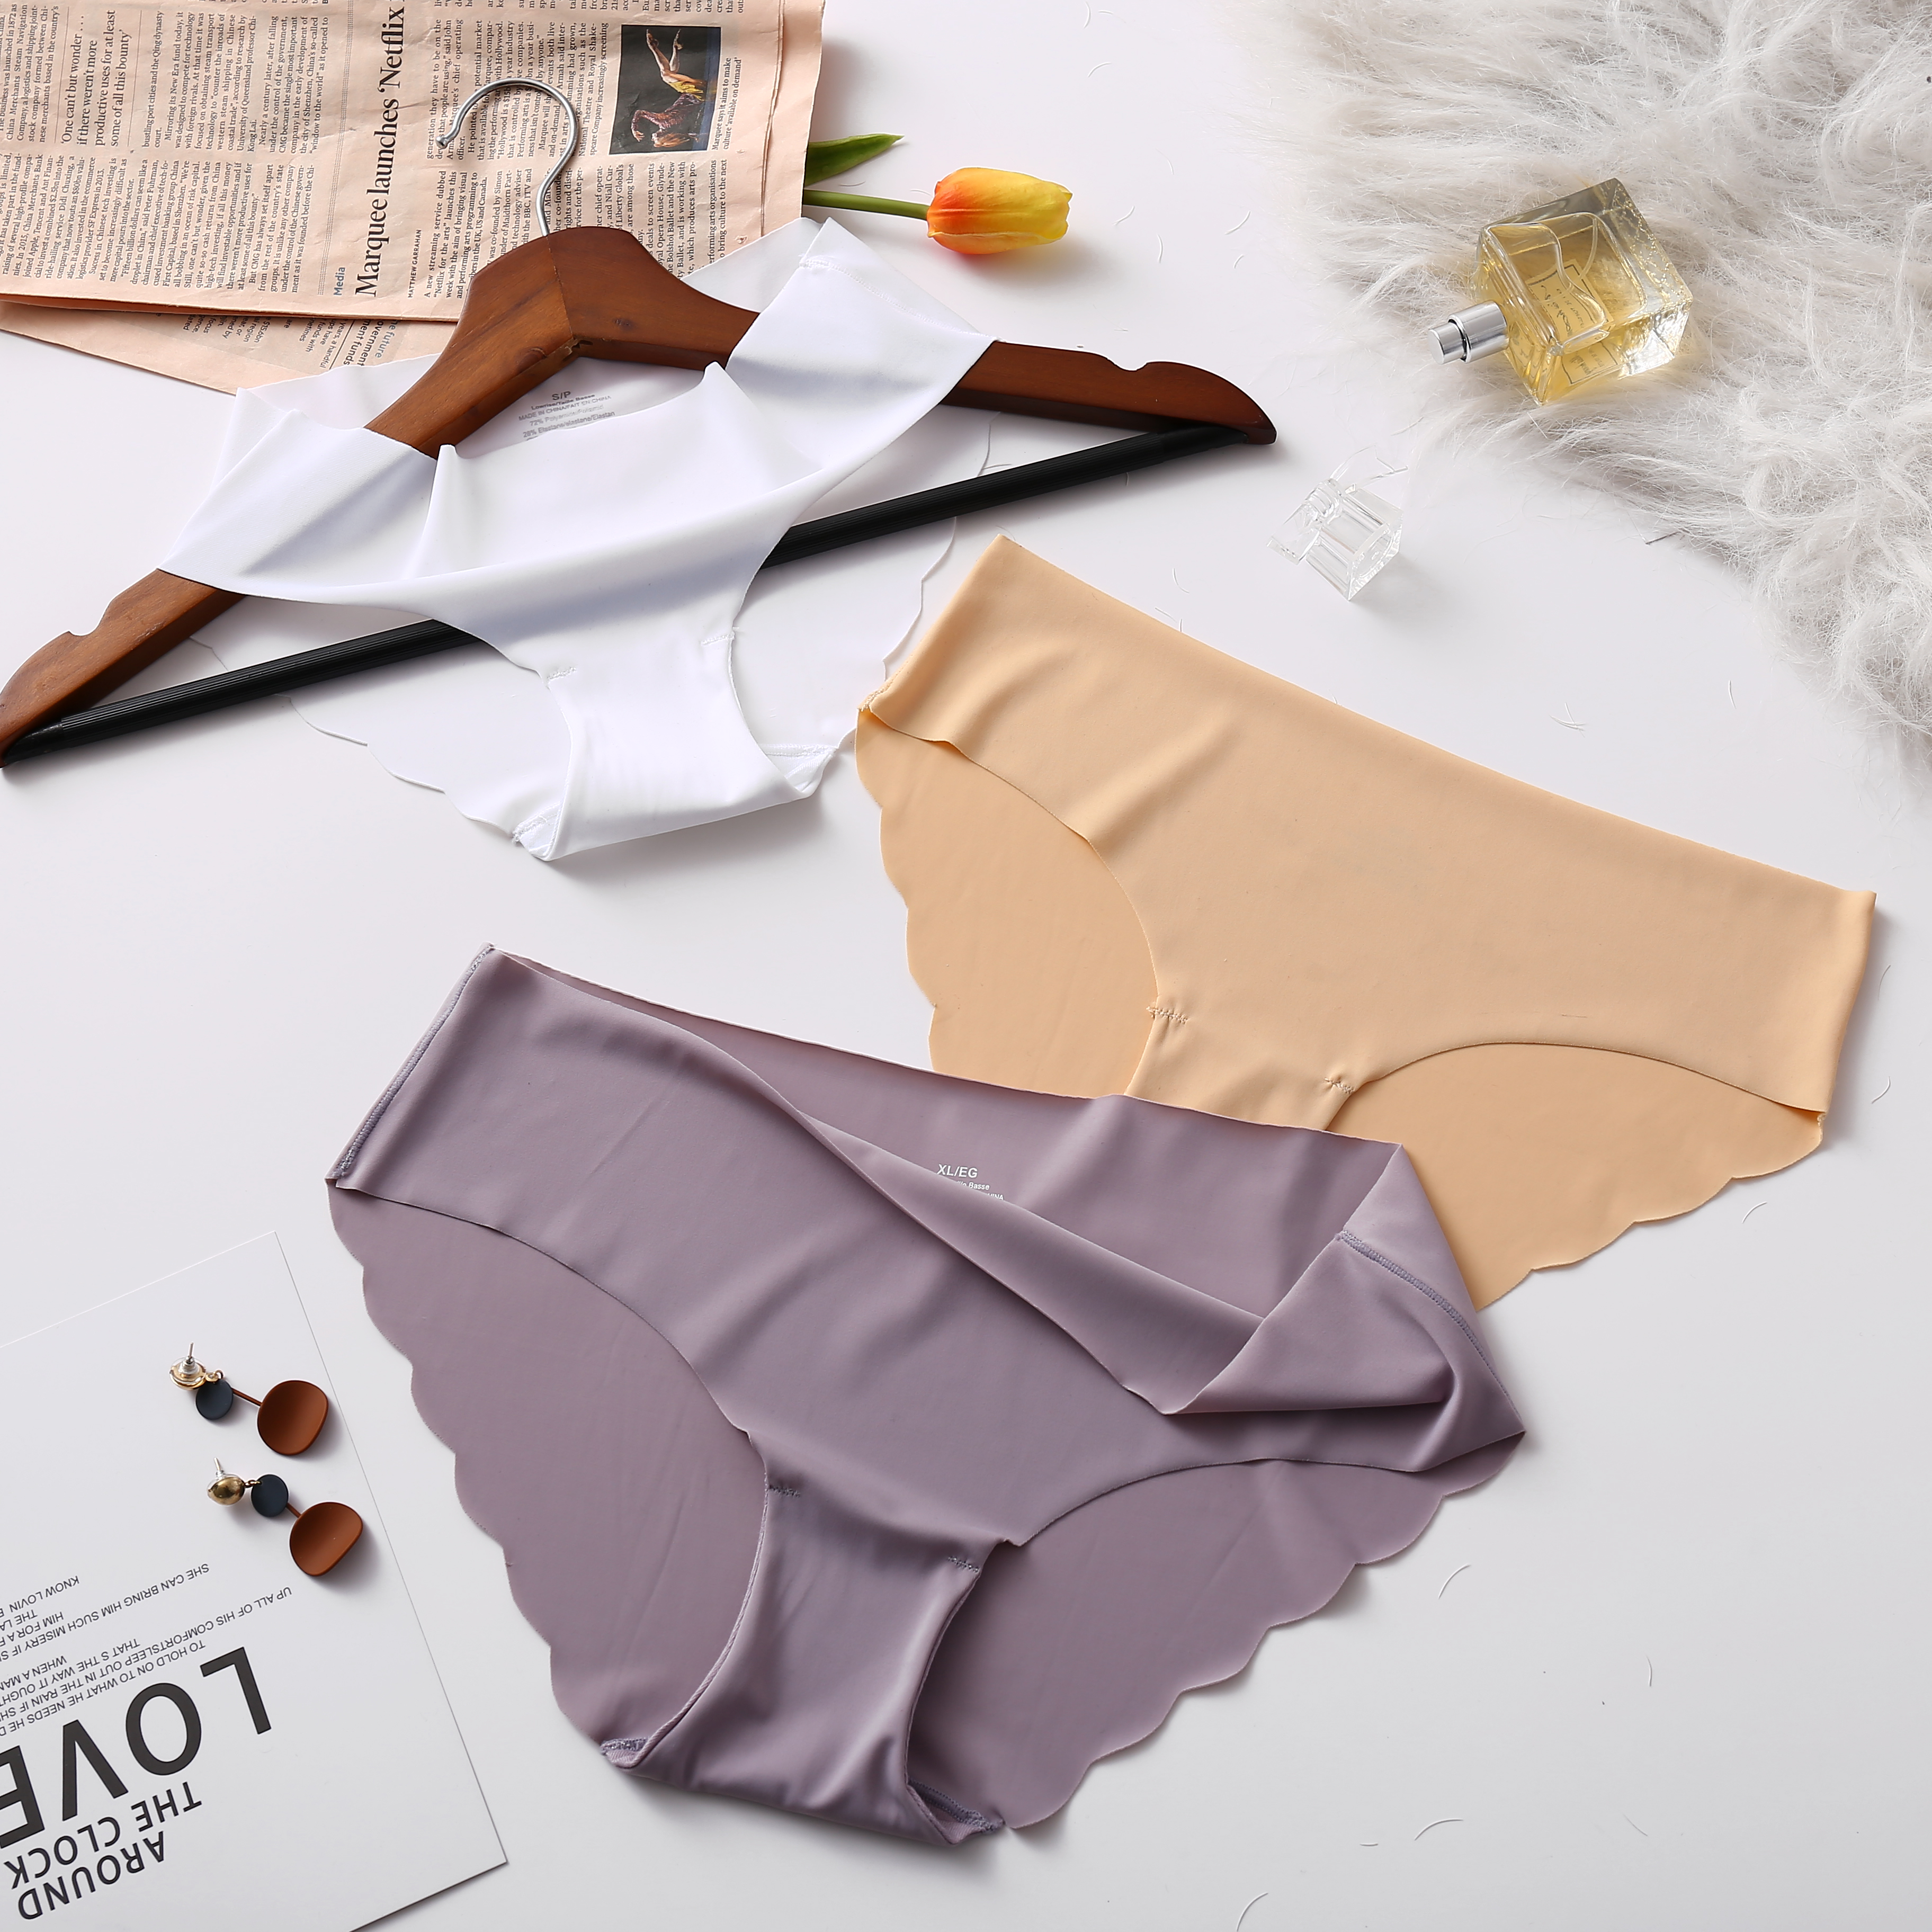 3Pcs/lot Low-Rise Seamless   Panties   Set For Women Fashion Comfort Underwear Intimates Female Briefs Lingerie